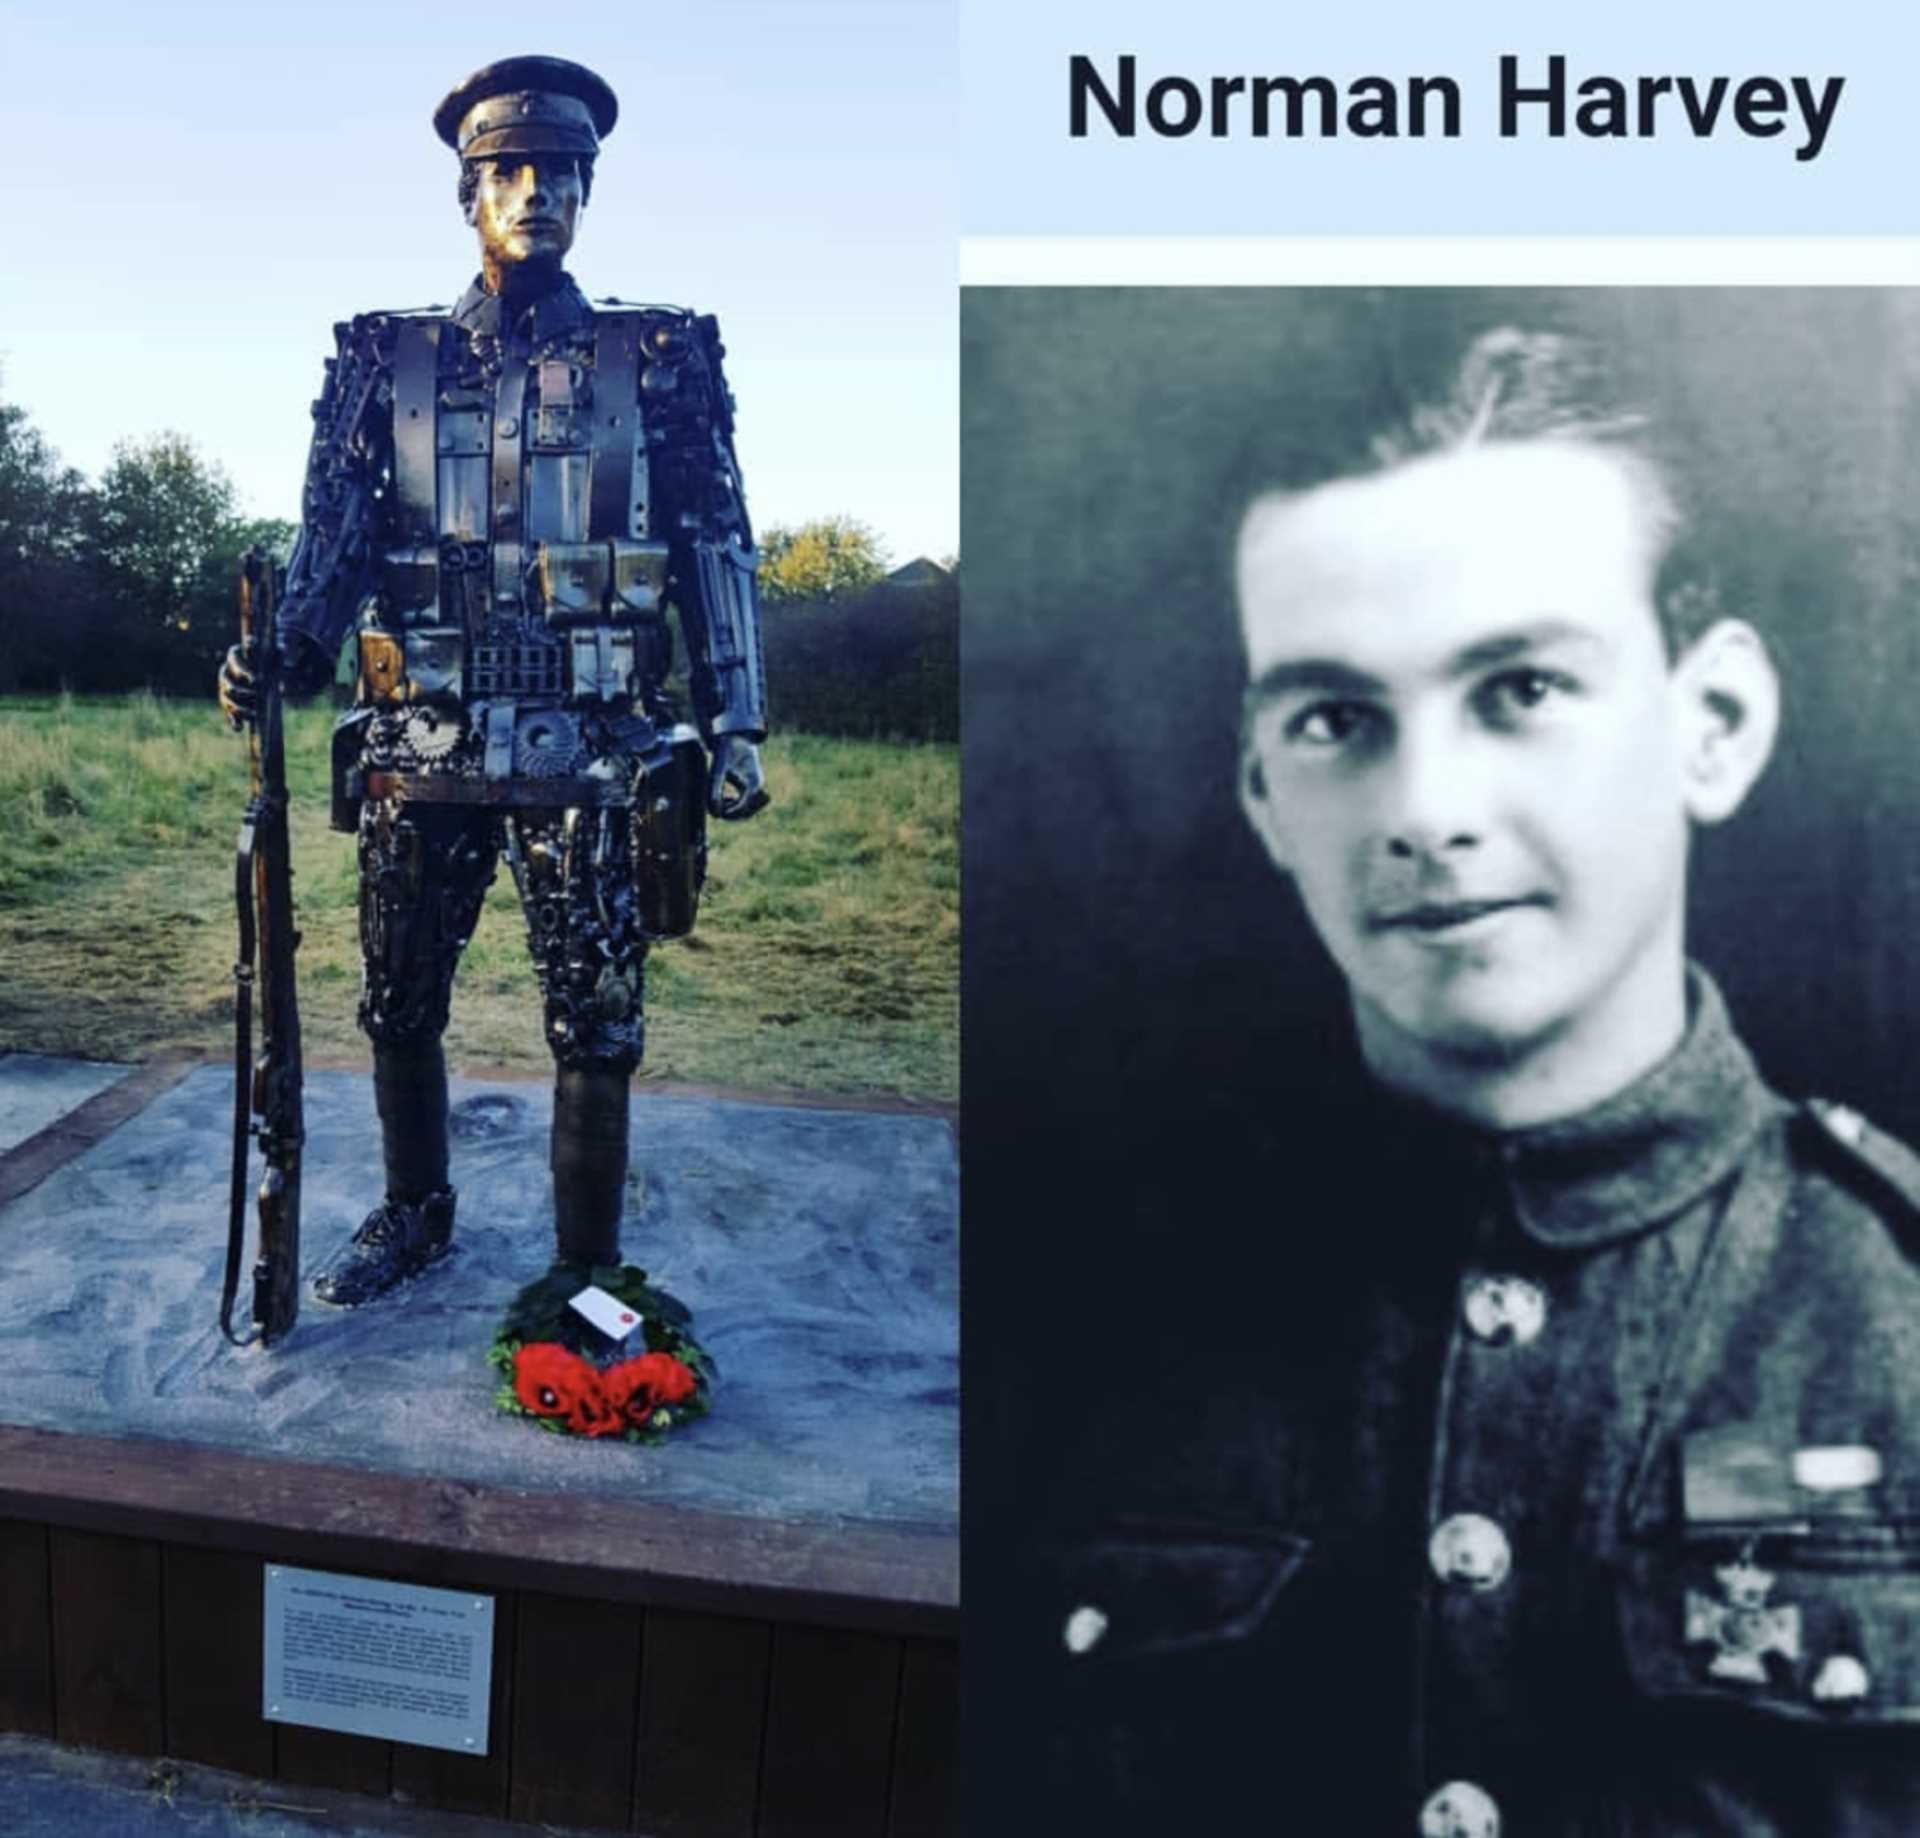 VC hero Norman Harvey unveiled